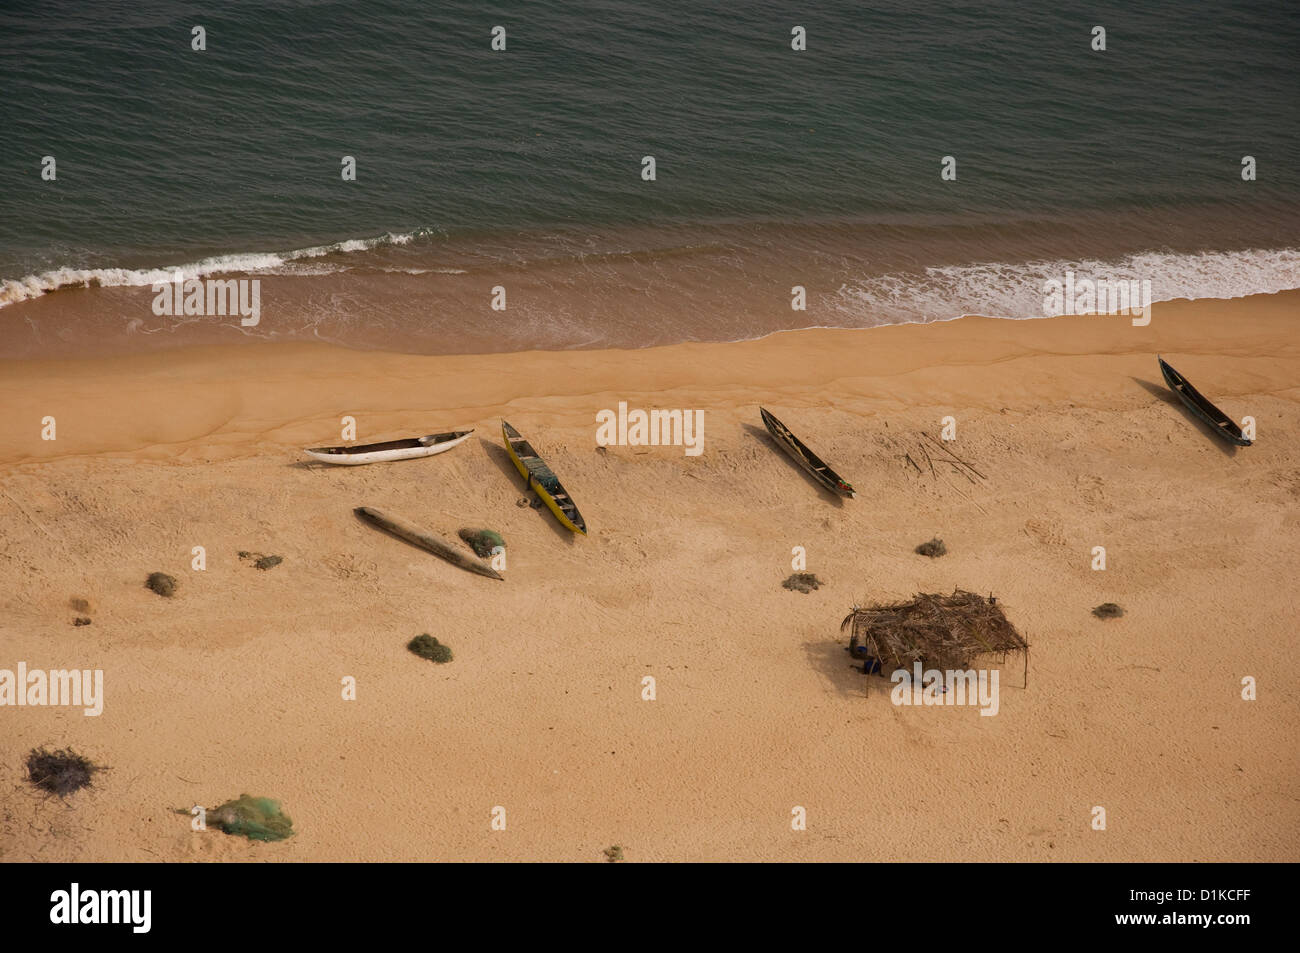 Aerial photo of canoes, nets and a make shift shelter, midday, on a ferry flight from Monrovia to Freetown. - Stock Image